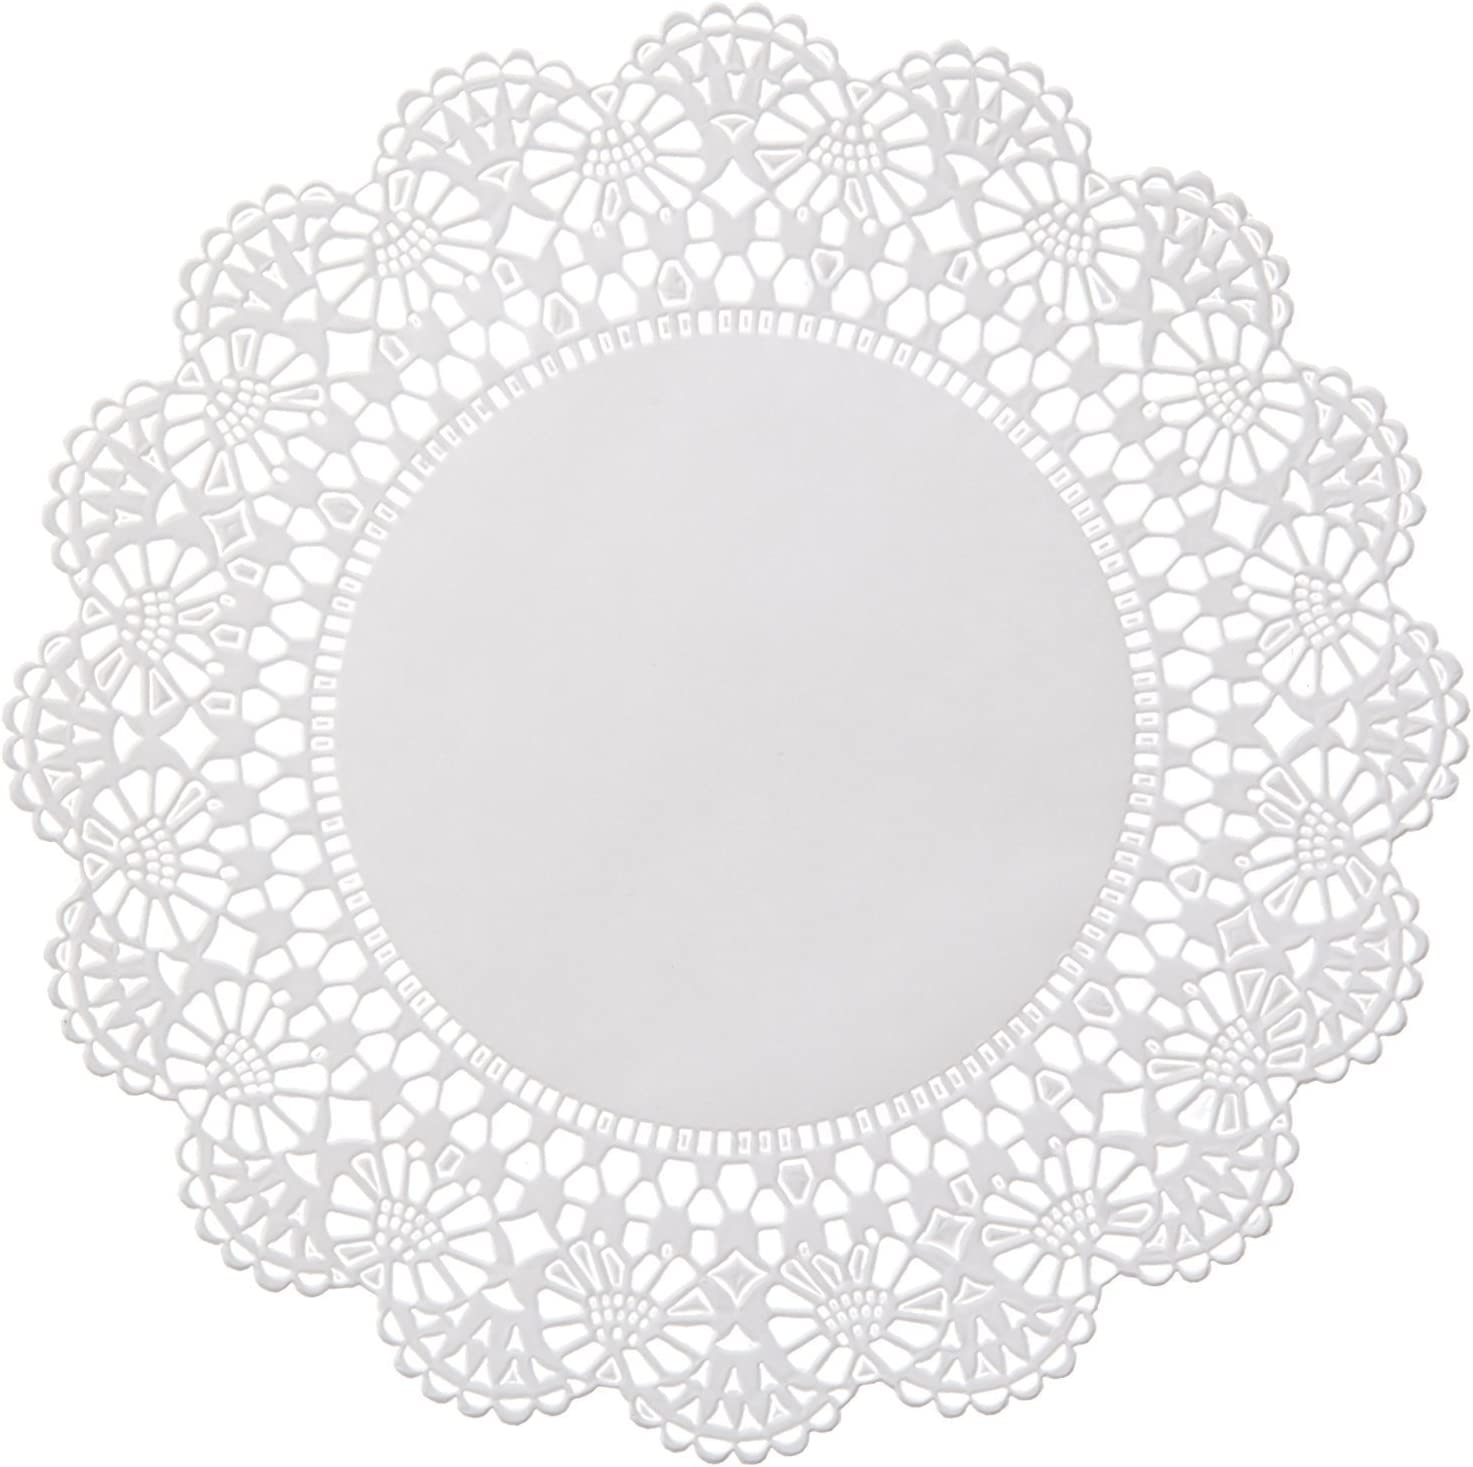 The Baker Celebrations 200 White Round Paper Lace Doilies - 6 inch - Add an Extra Touch to Your Baked Goods